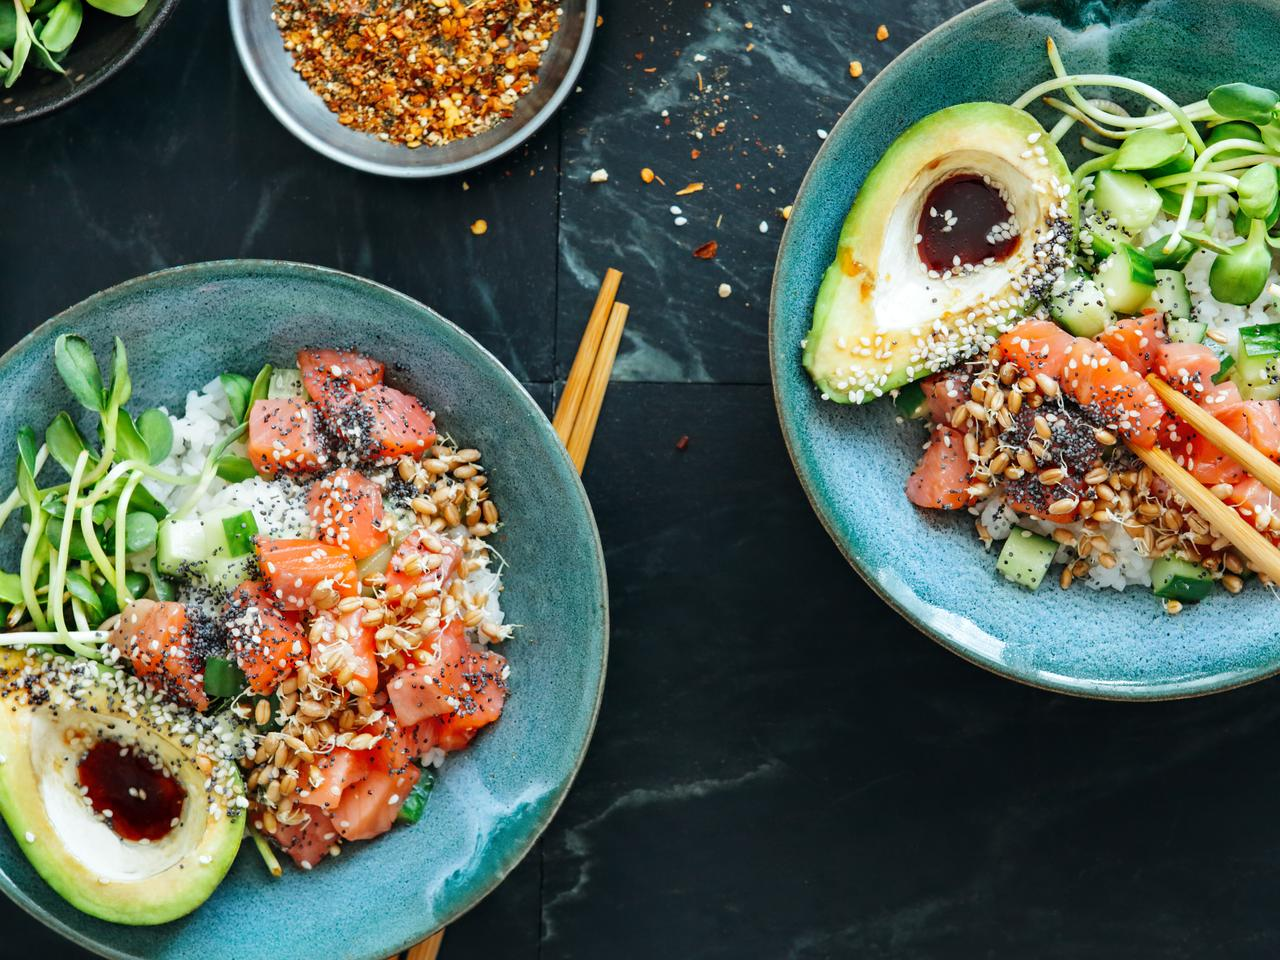 Don't forget to try a fresh poke bowl while you're there.